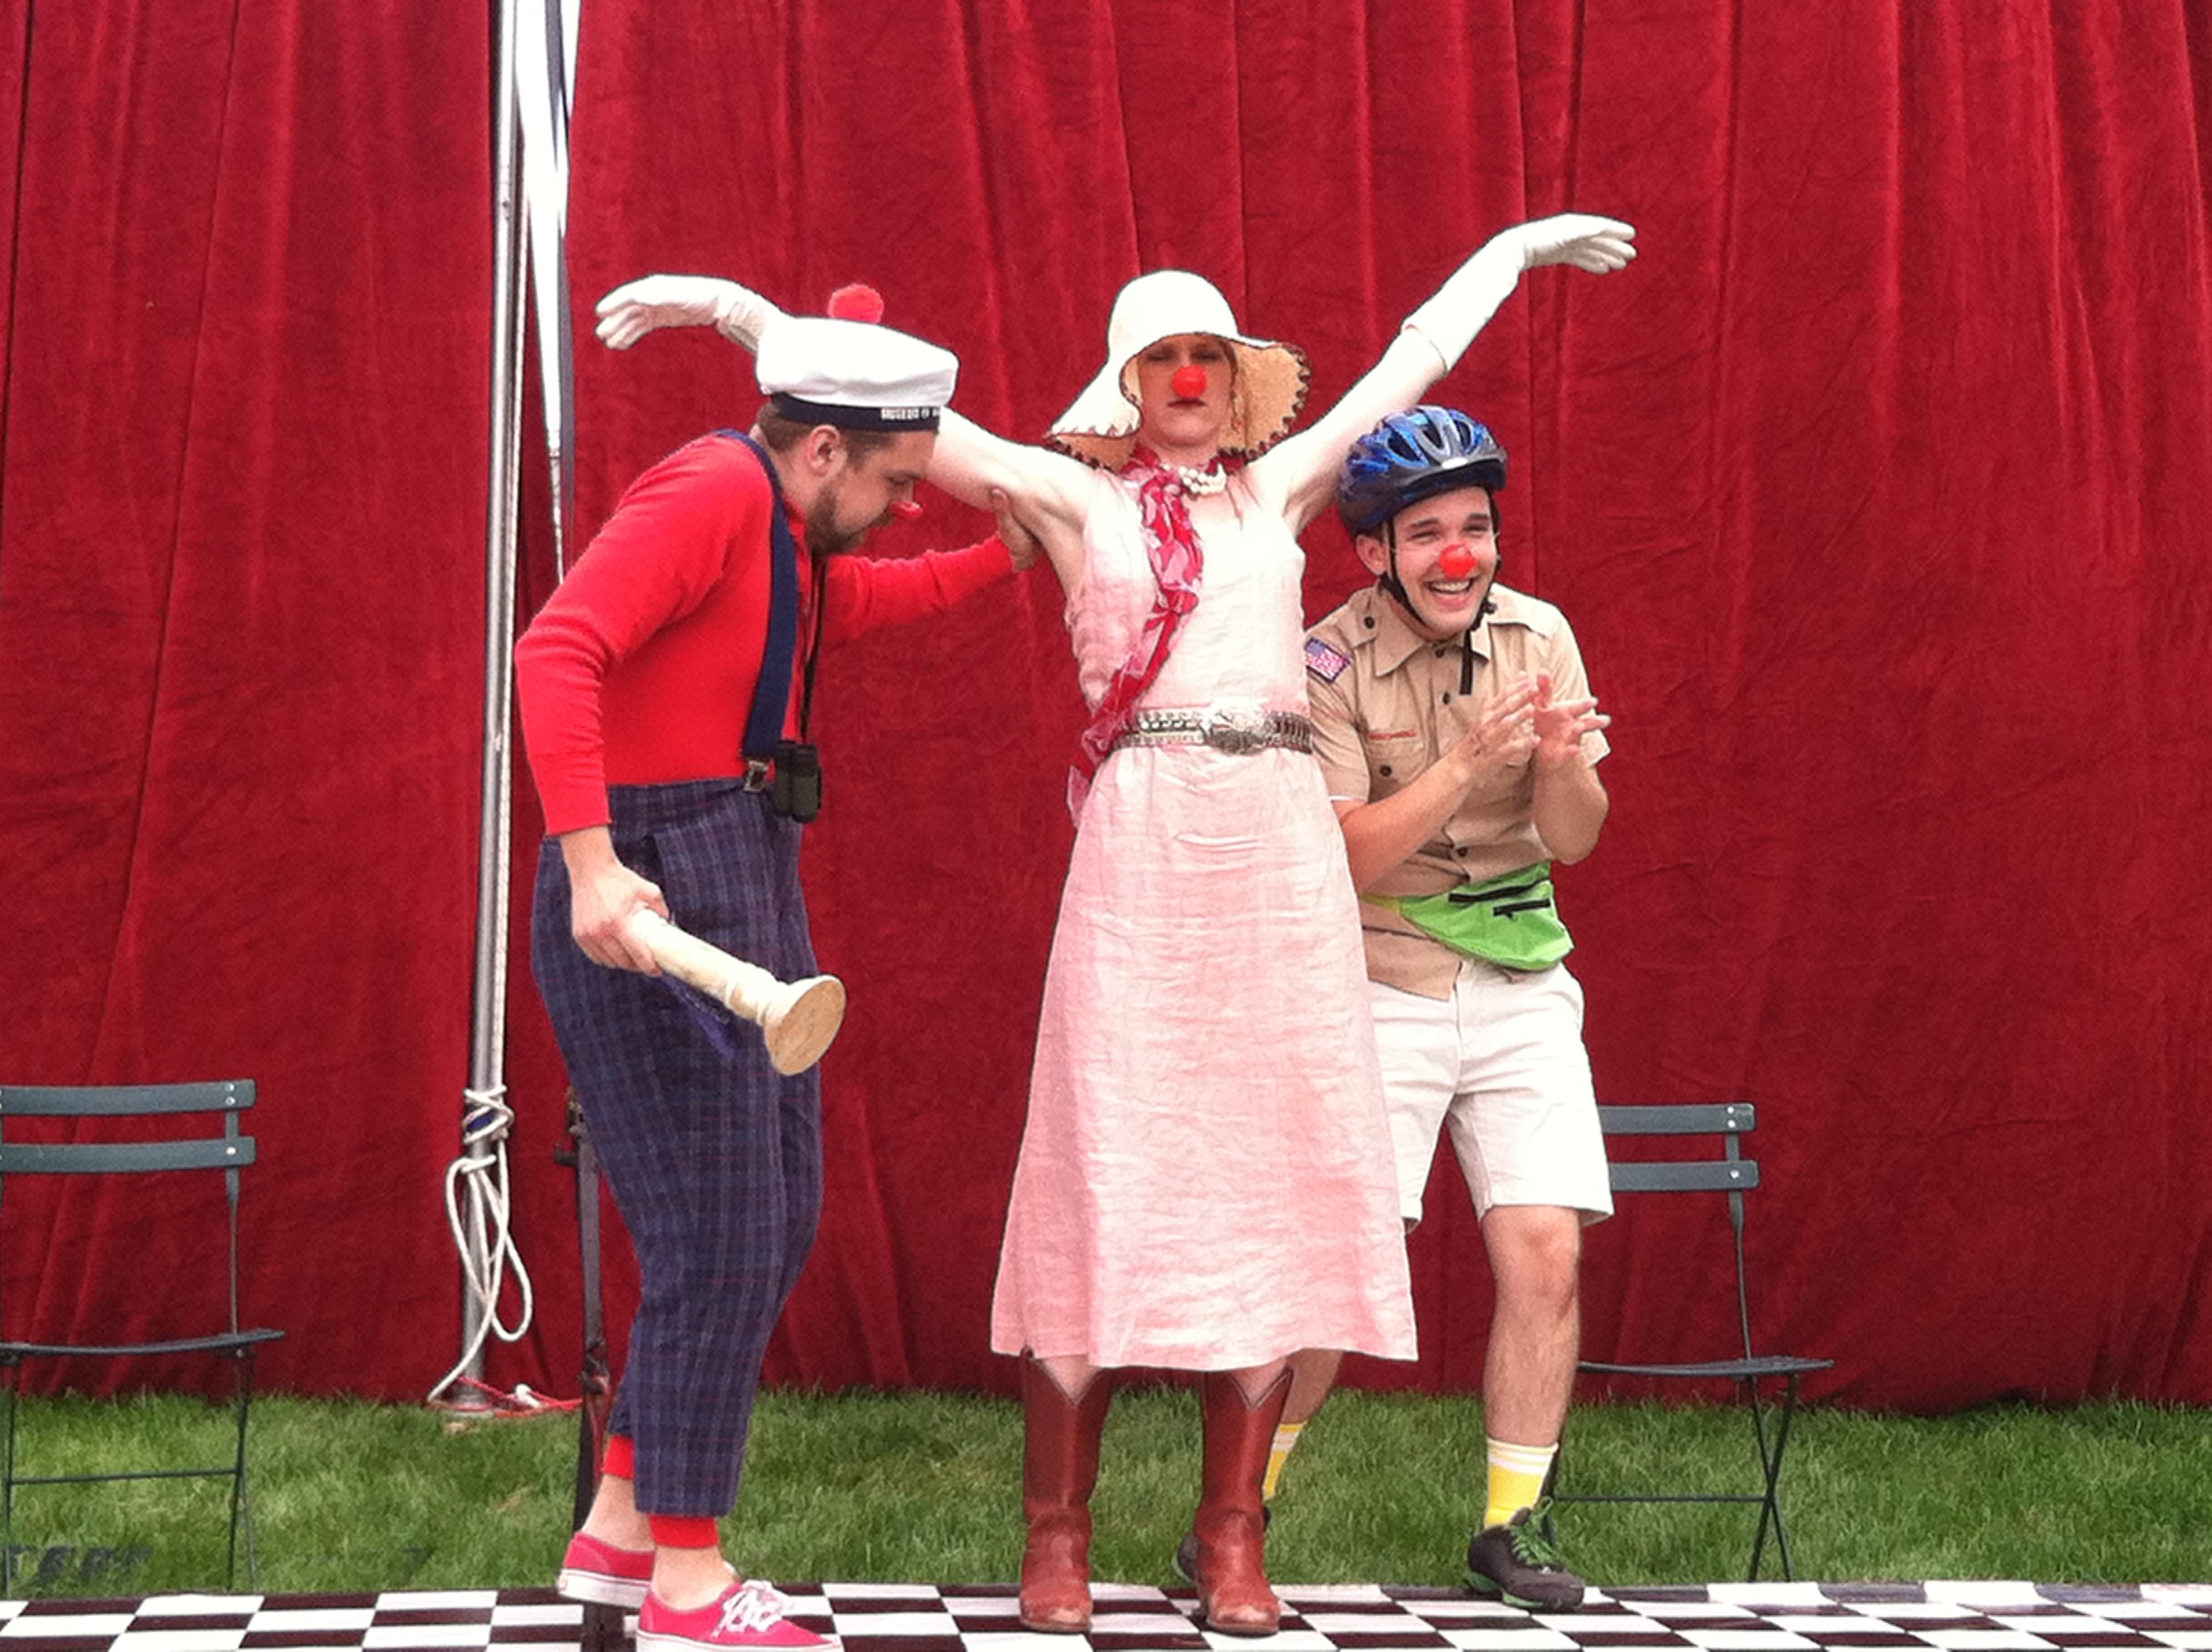 FIGMENT-Chicago-Aug10_Red-Curtain-Stage_David-Shuey.jpg